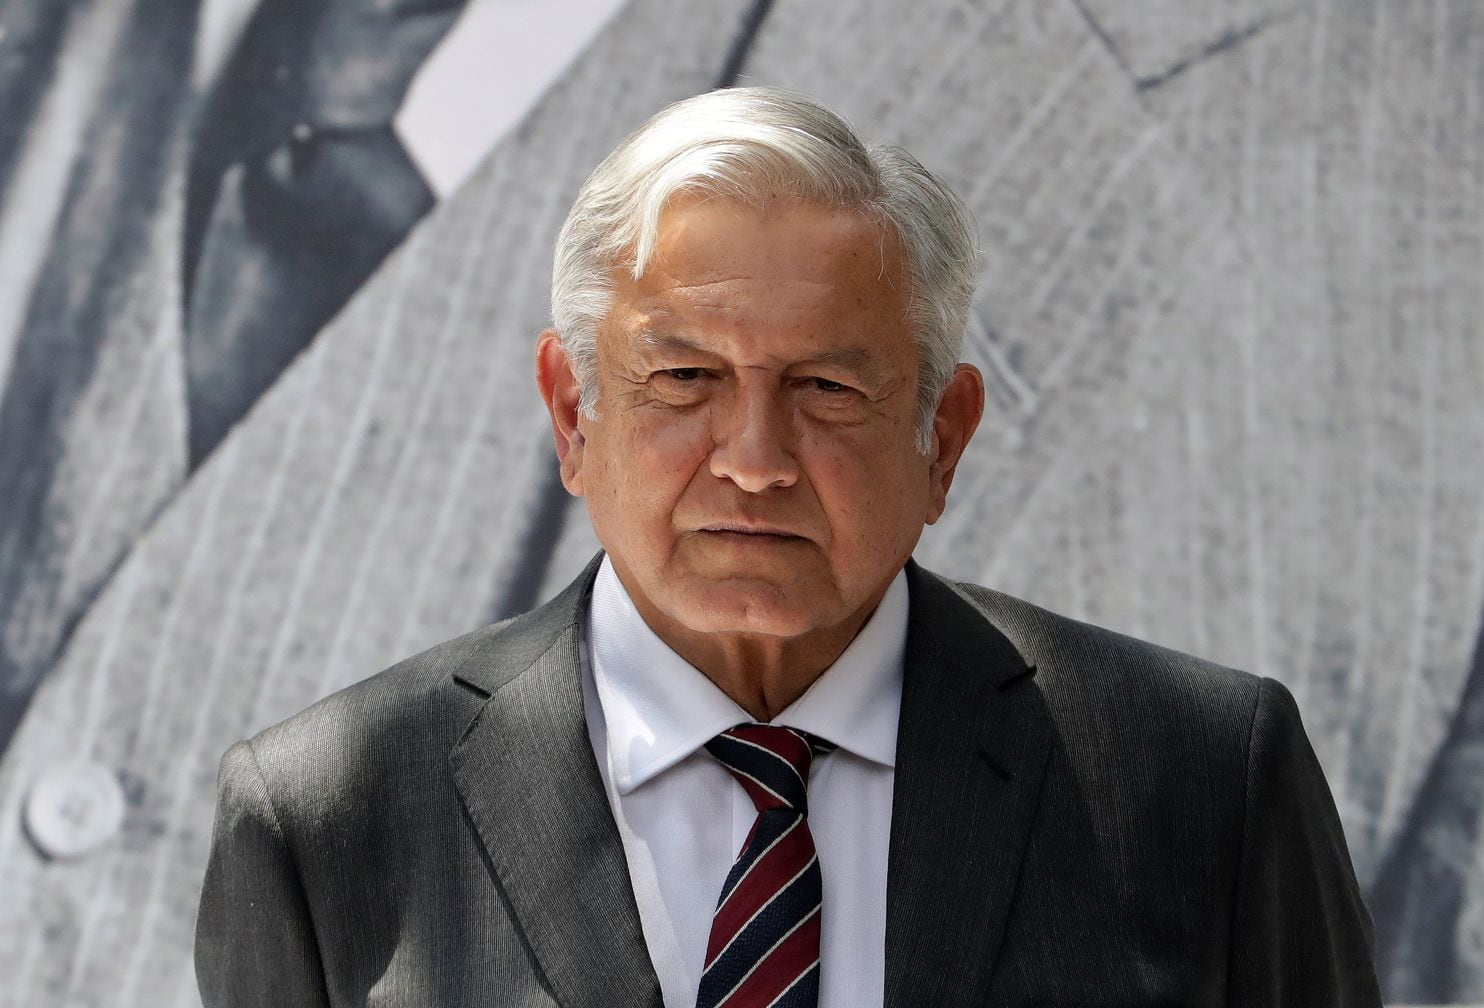 Mexico's next president could be on a collision course with Trump over immigration